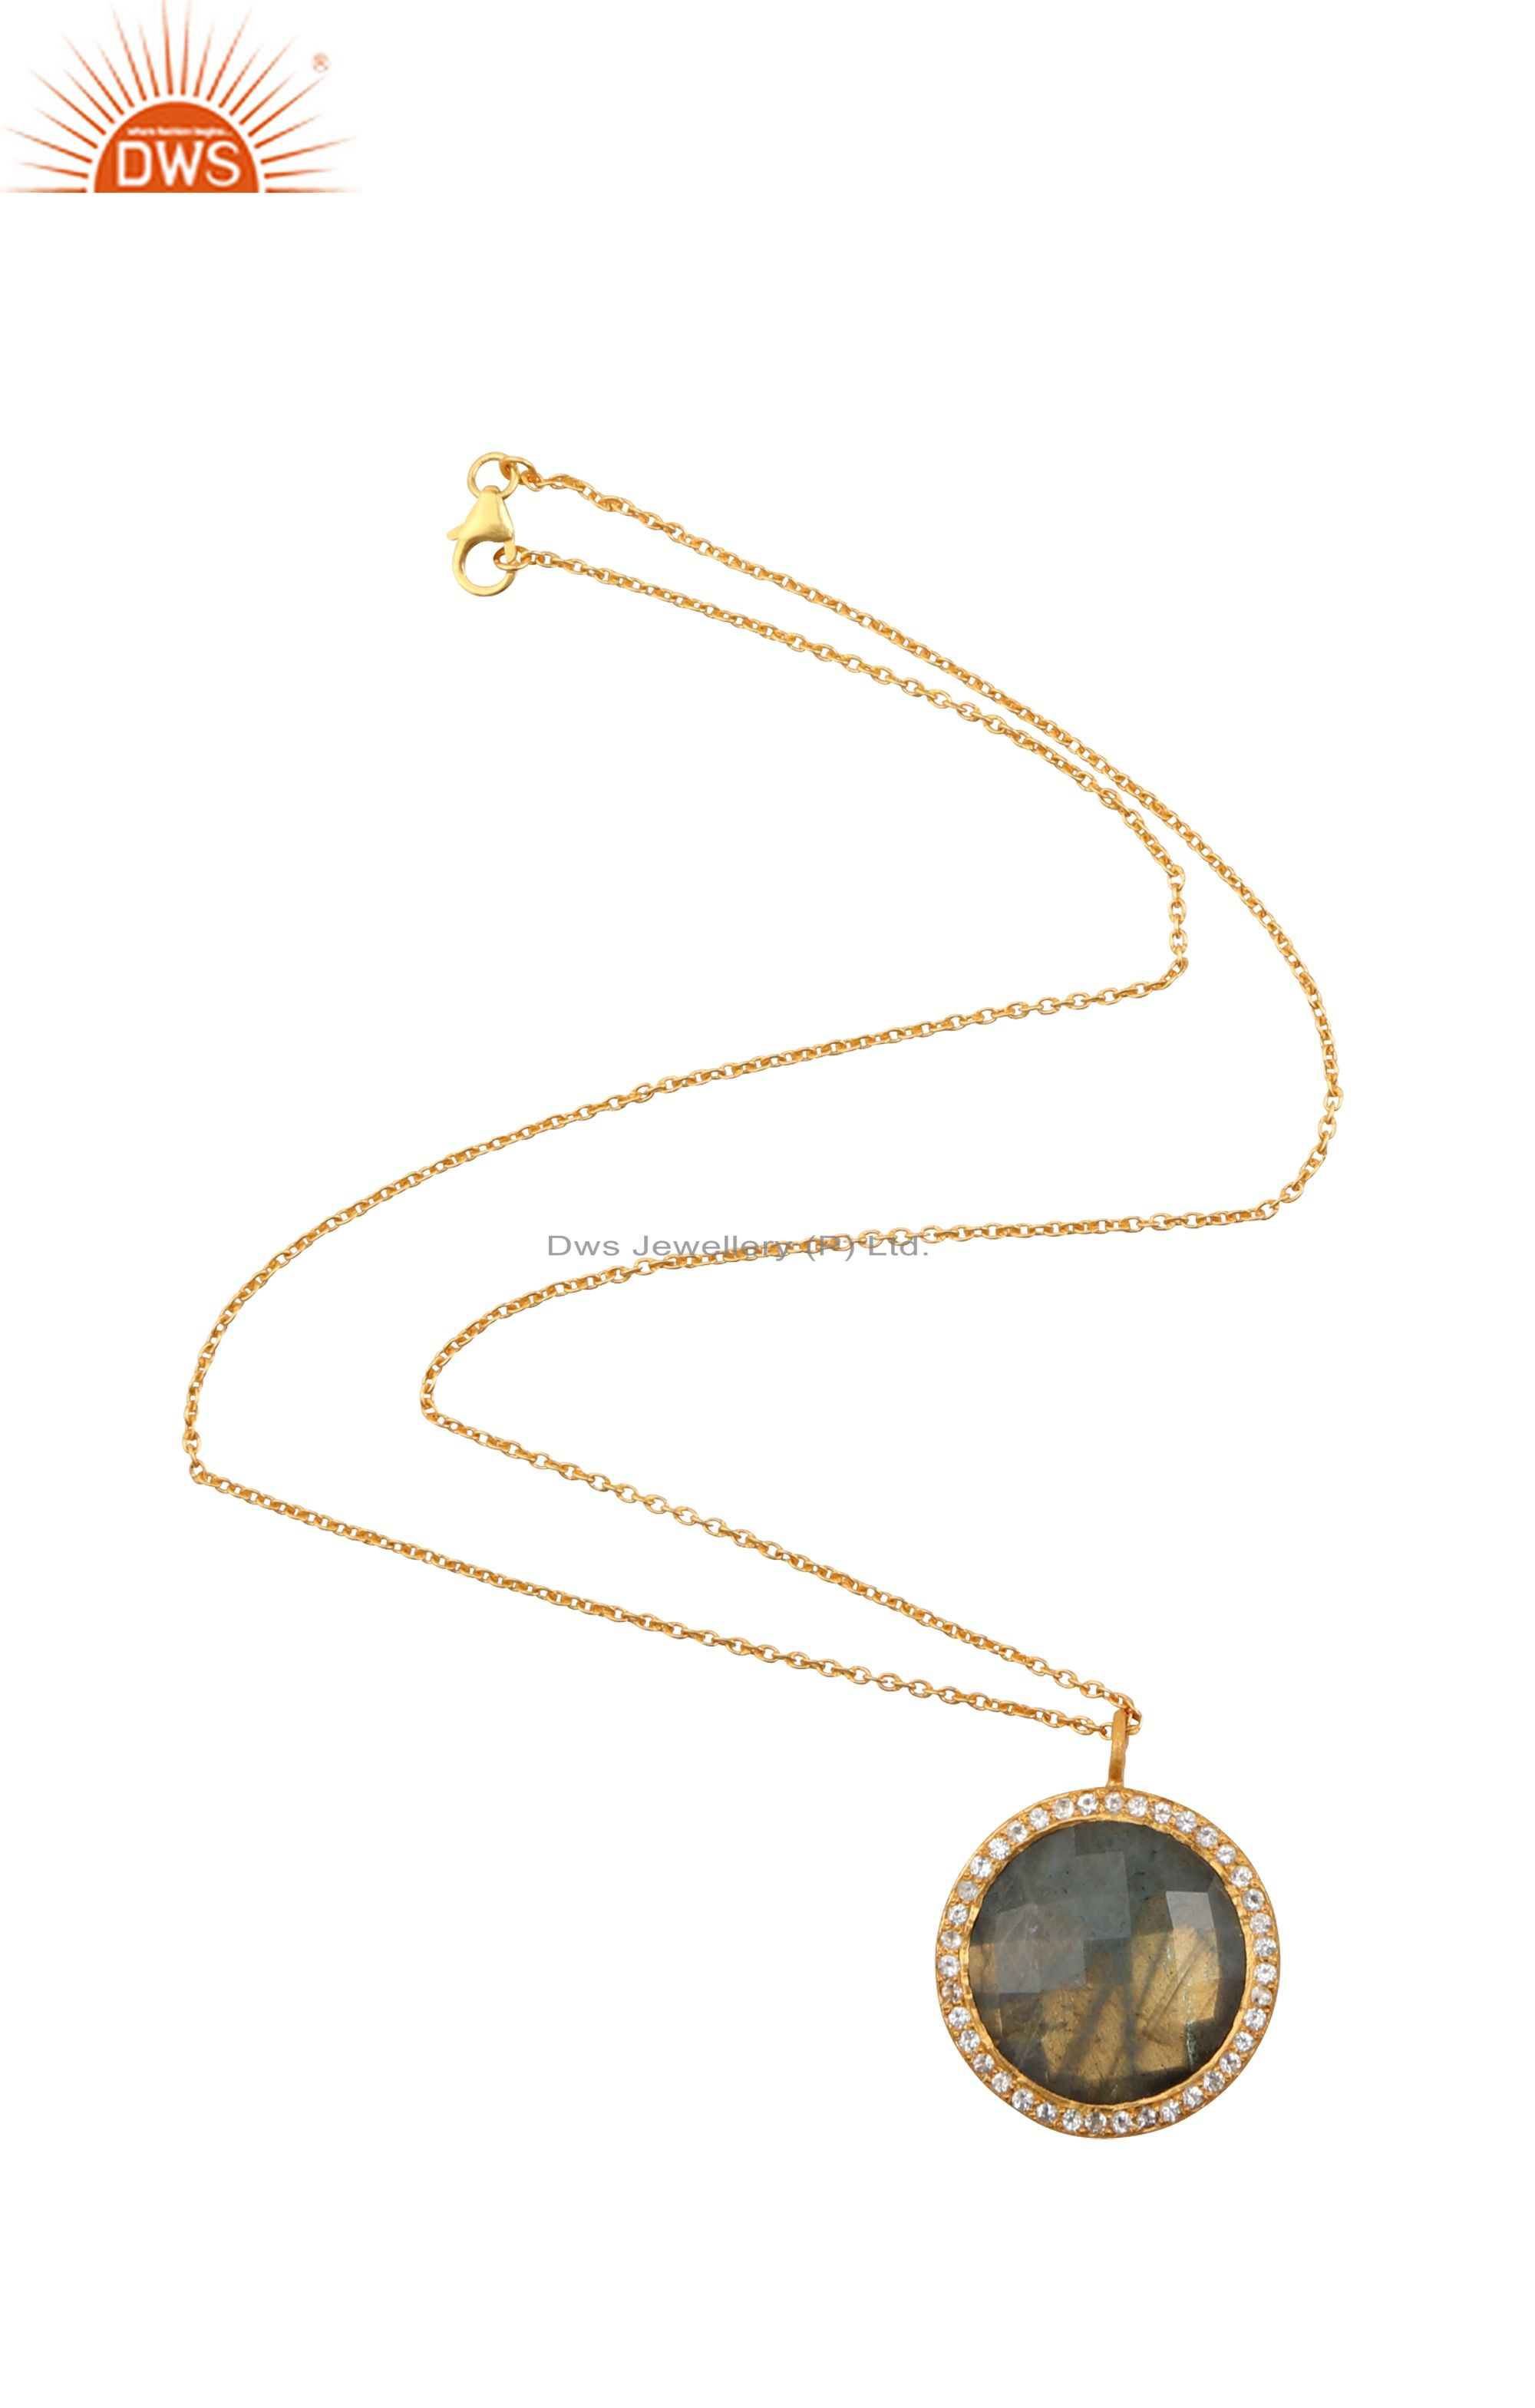 18K Gold Plated Sterling Silver Labradorite And White Topaz Pendant With Chain